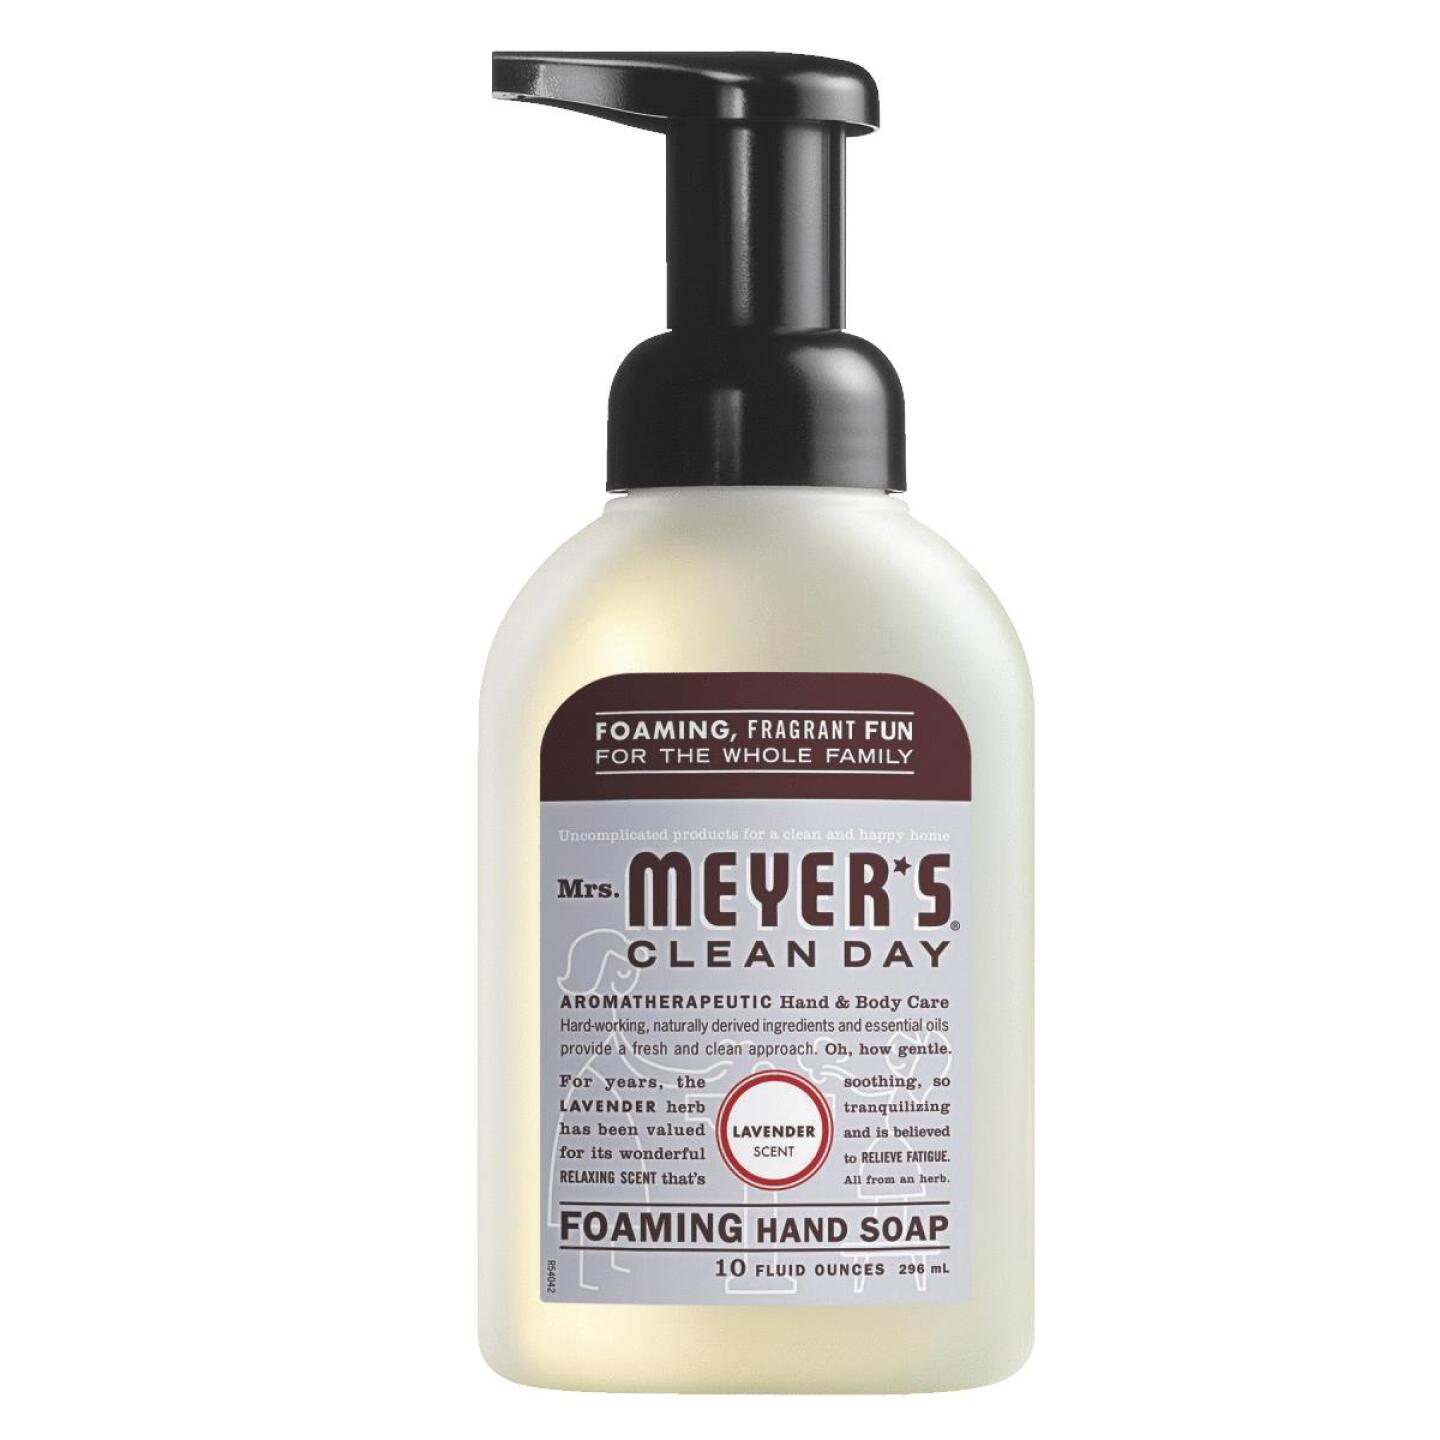 Mrs. Meyer's Clean Day Lavender Foaming Hand Soap Image 1